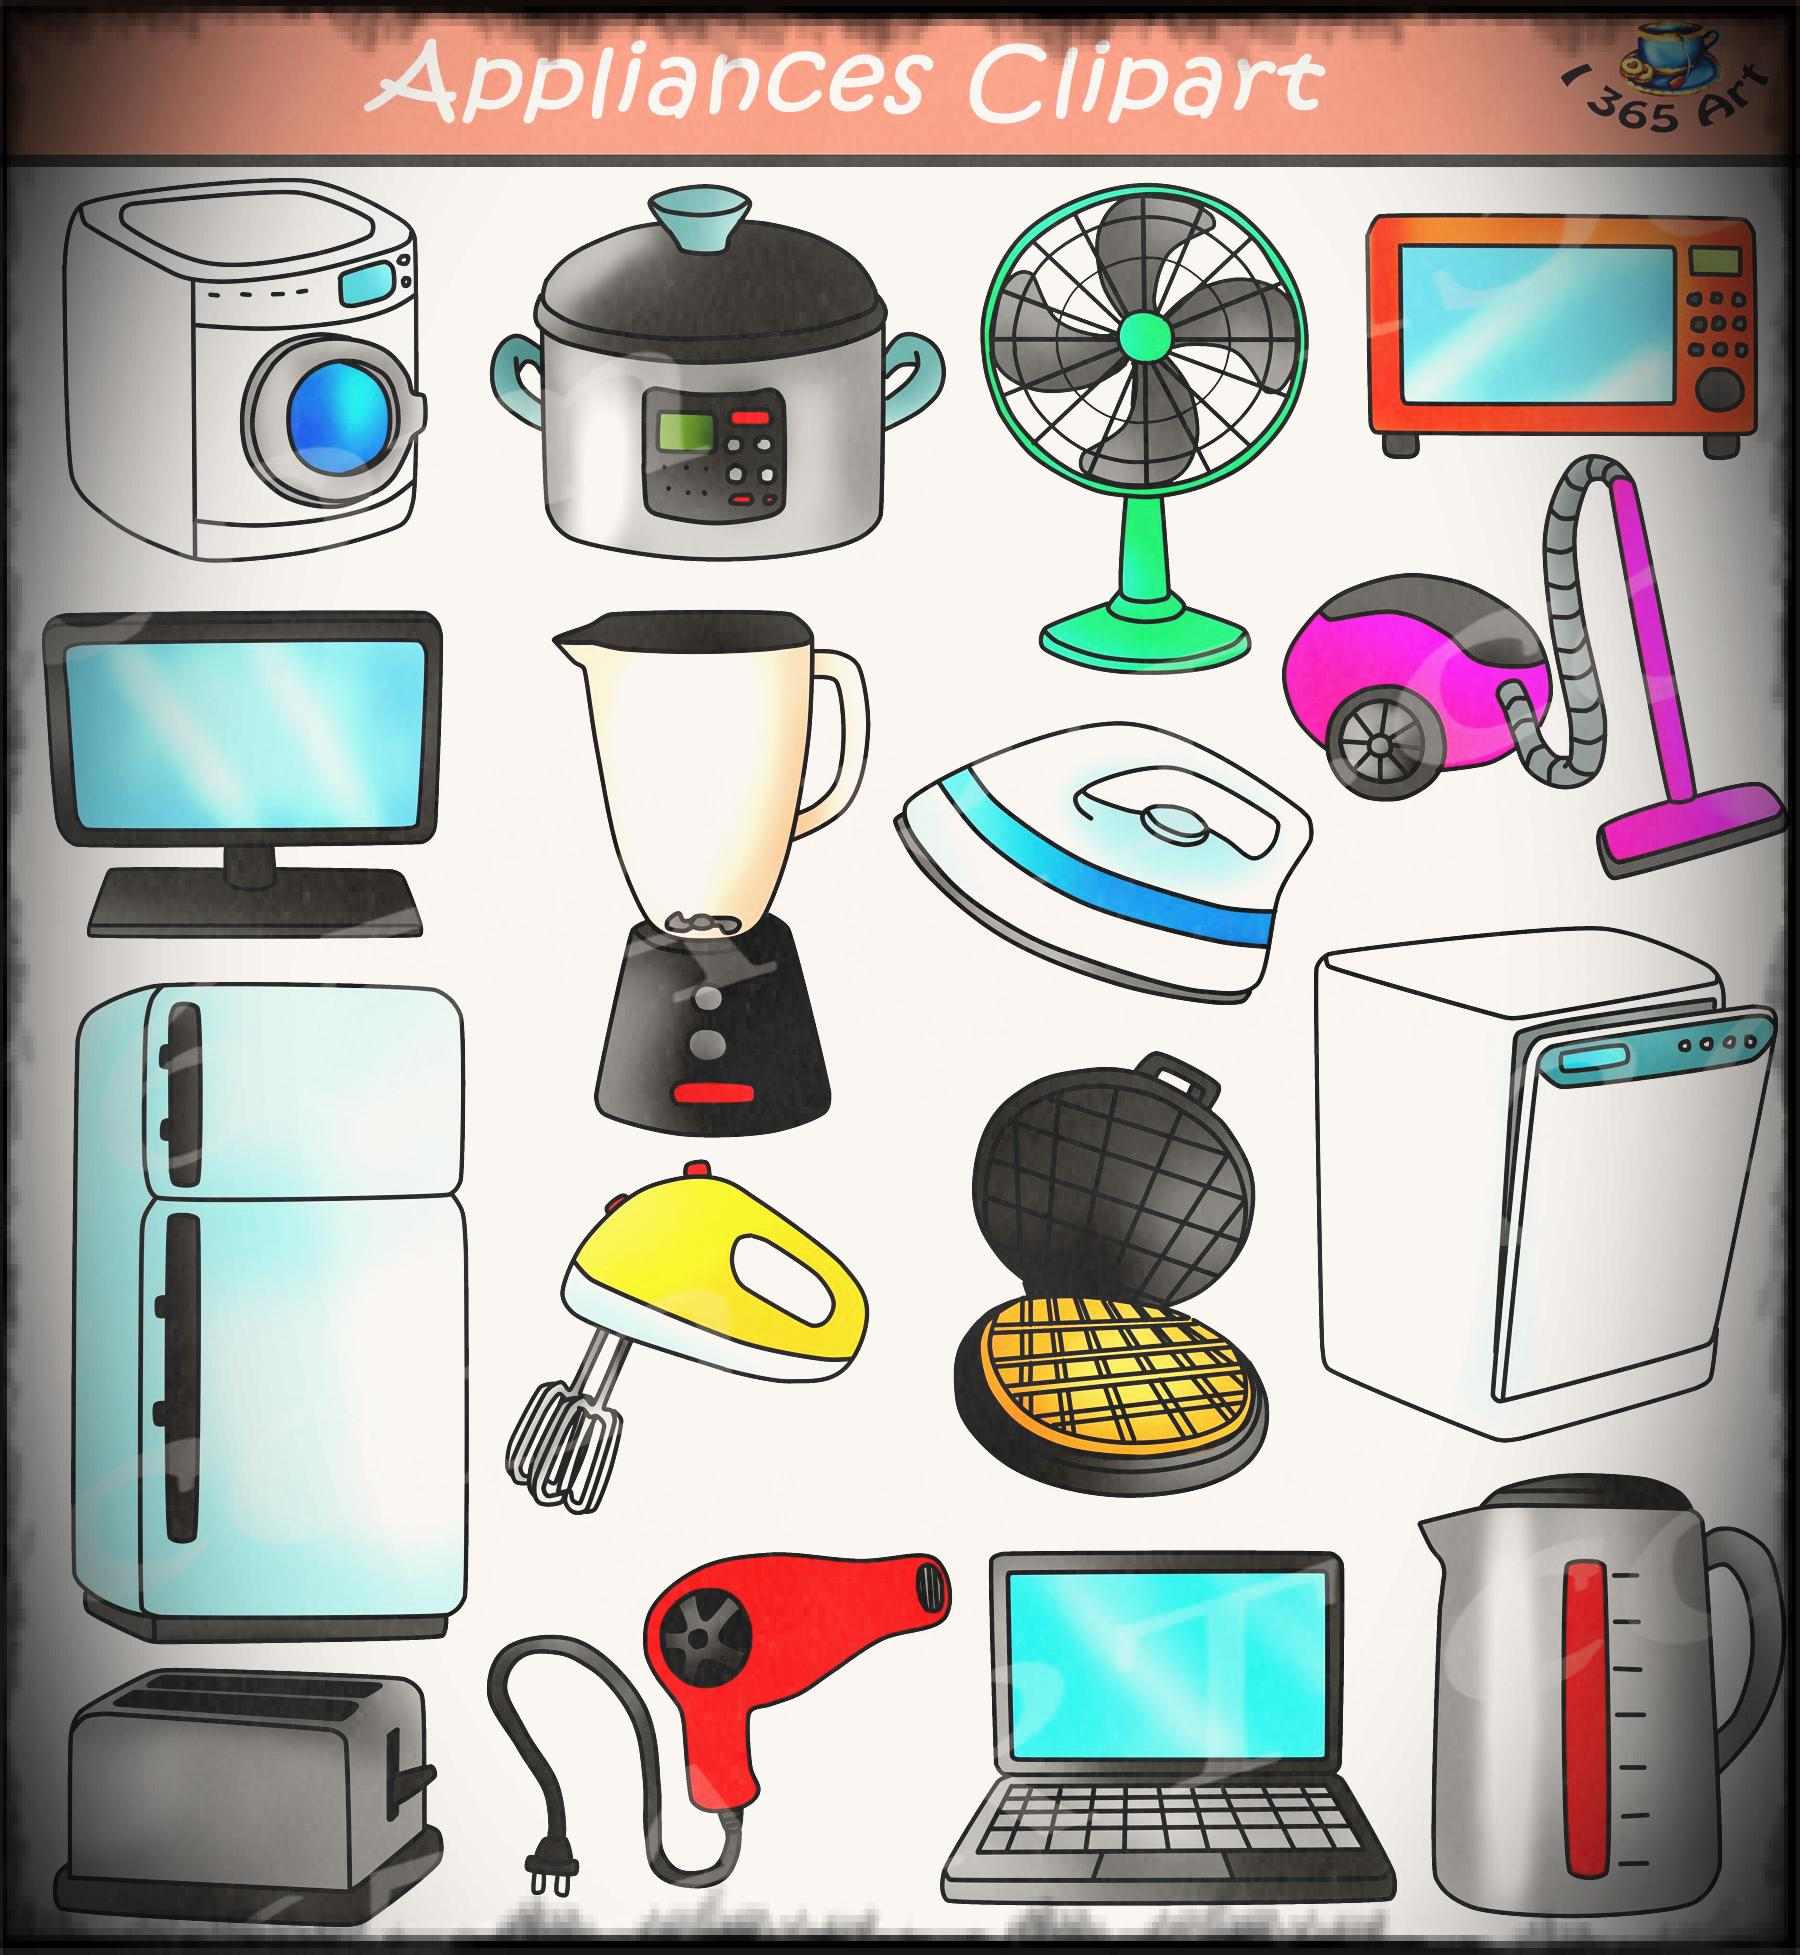 Bedroom clipart appliance. Appliances electrical devices school